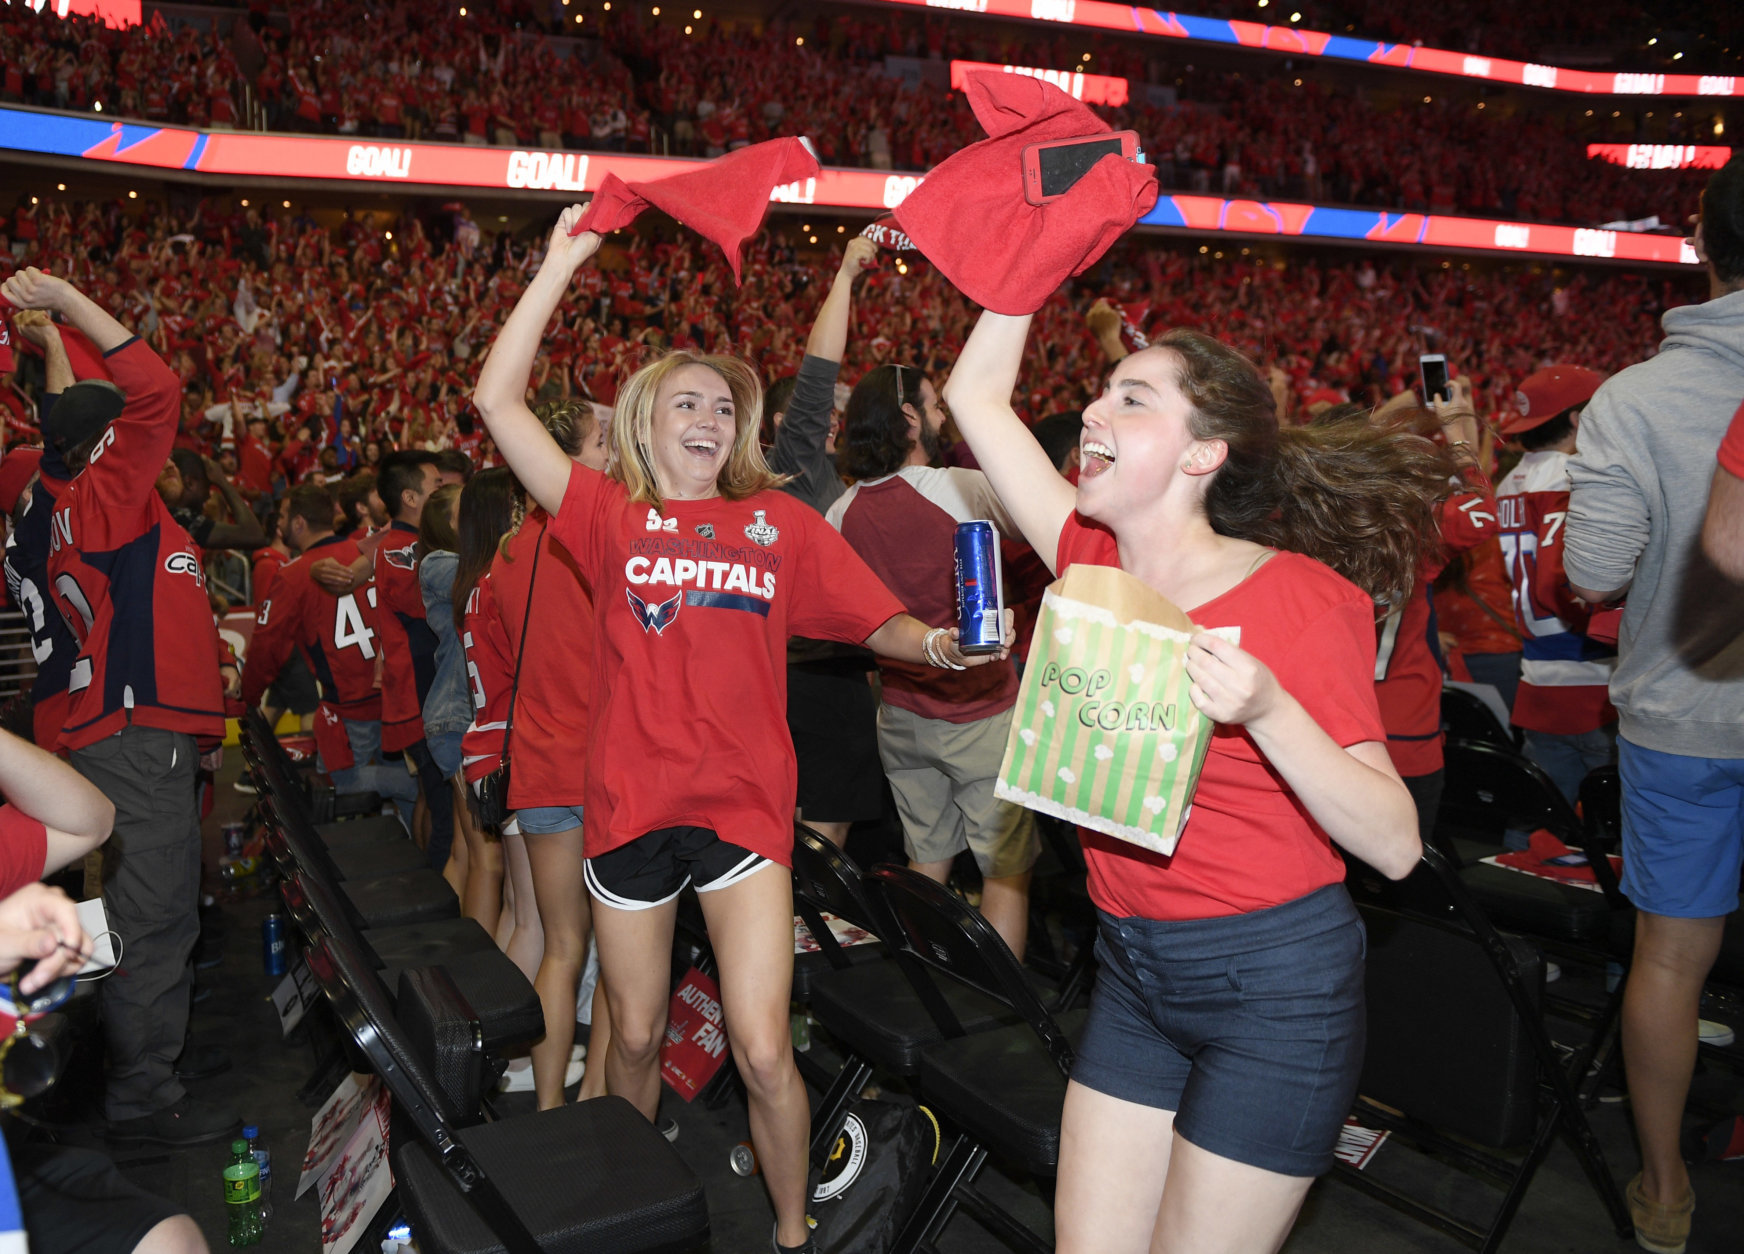 Fans at a viewing party react to a goal by Washington Capitals' Jakub Vrana during Game 5 of the NHL hockey Stanley Cup Final between the Capitals and the Vegas Golden Knights, Thursday, June 7, 2018, in Washington. (AP Photo/Nick Wass)